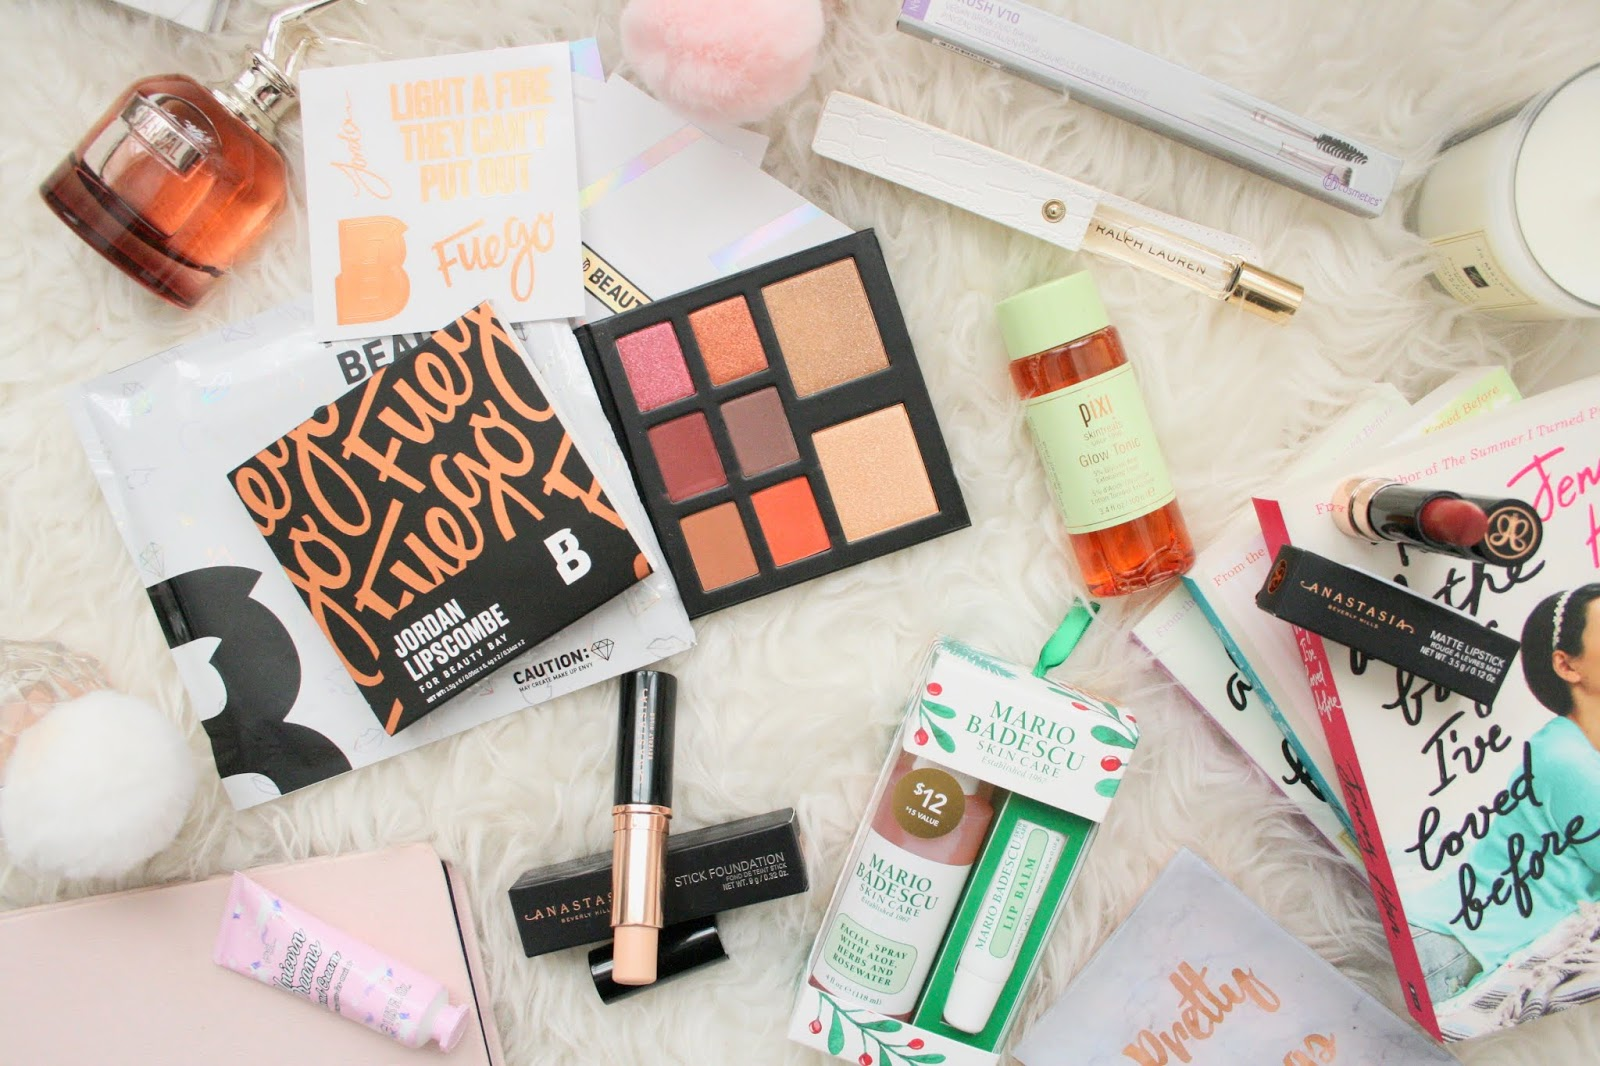 New Beauty Products Added To My Collection - First Impressions